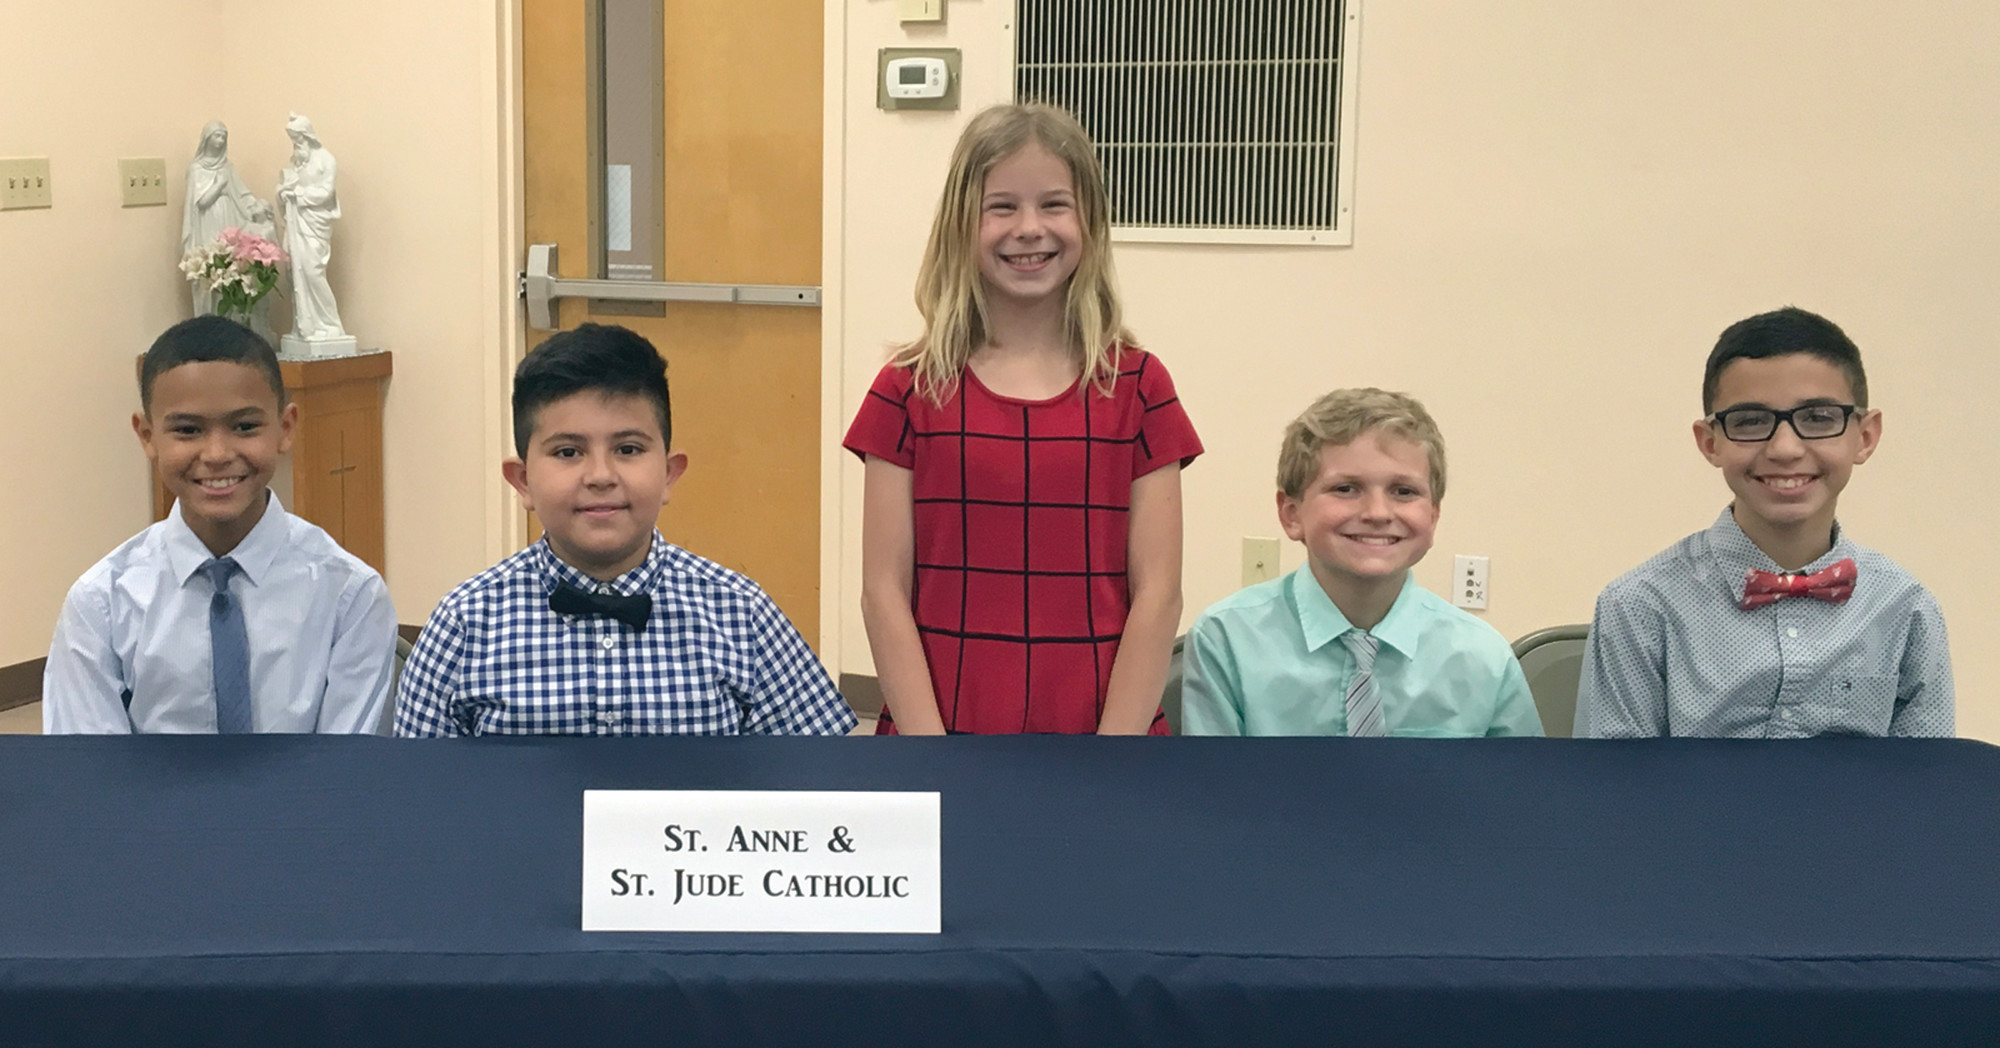 PHOTO PROVIDED BY SCISASt. Anne & St. Jude Catholic School students, from left, Christopher Carpenter, Alek Lujan, Ashlyn Hutchison, Jonah Reisenauer and Entrique Rodriguez took fourth place in the SCISA Lower School Quiz Bowl. University School of the Lowcountry from Mt. Pleasant finished the competition with the top score, followed by the team from Cathedral Academy in Charleston. The team from All Saints' Episcopal Day School from Florence took third place.